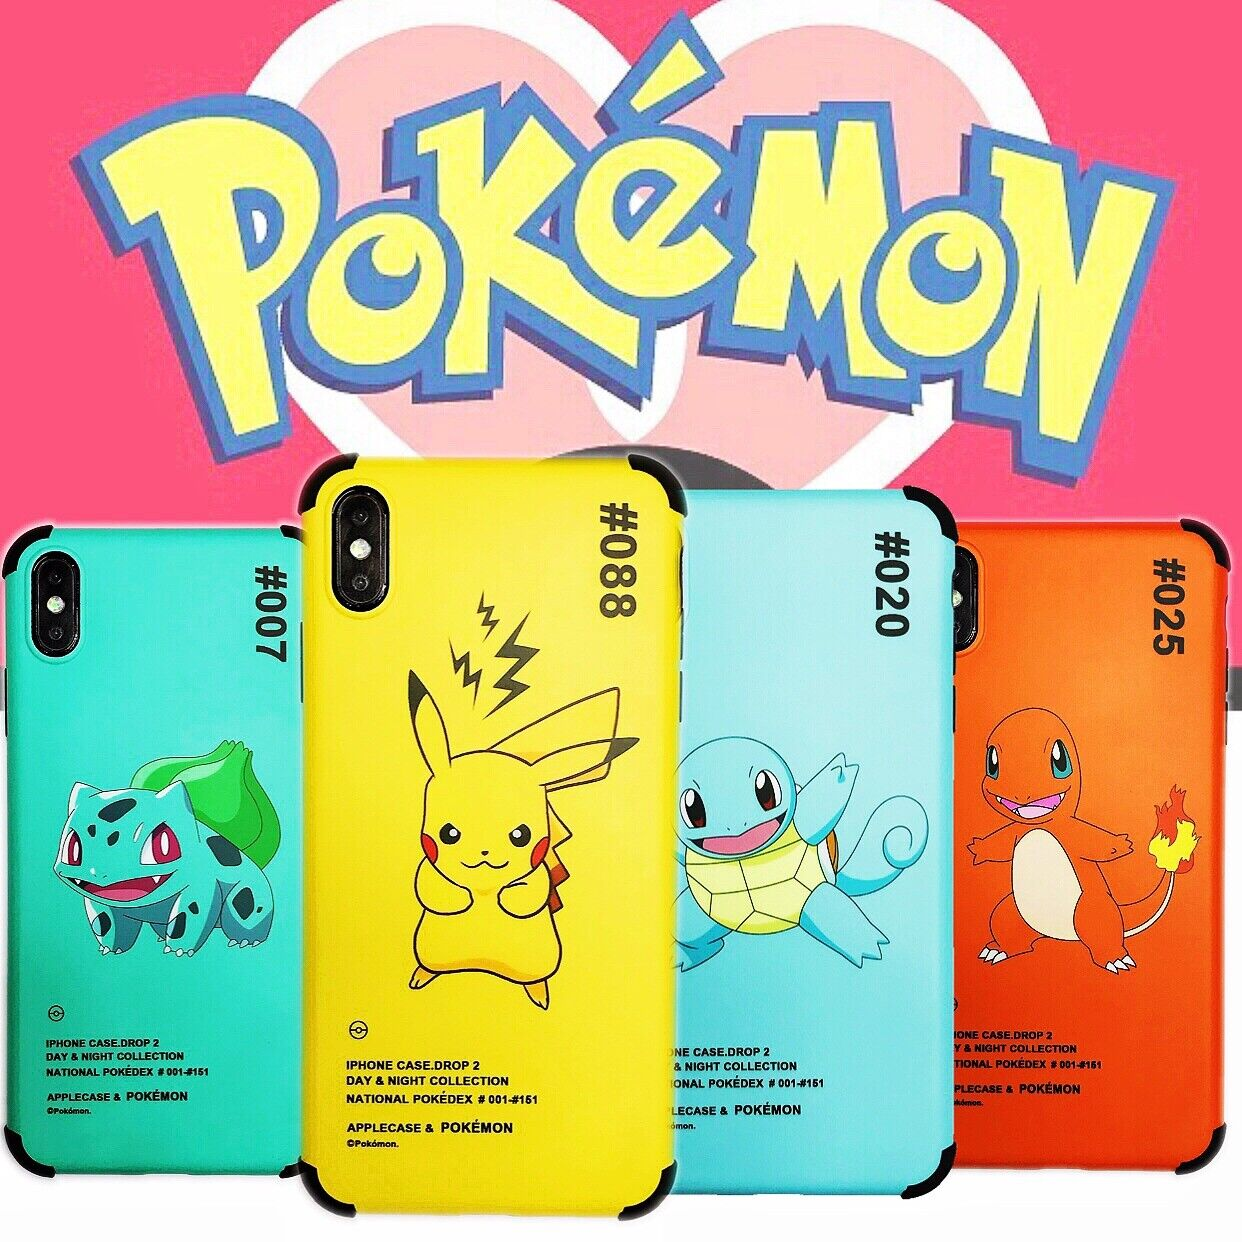 Pokemon Pikachu 2 iphone case